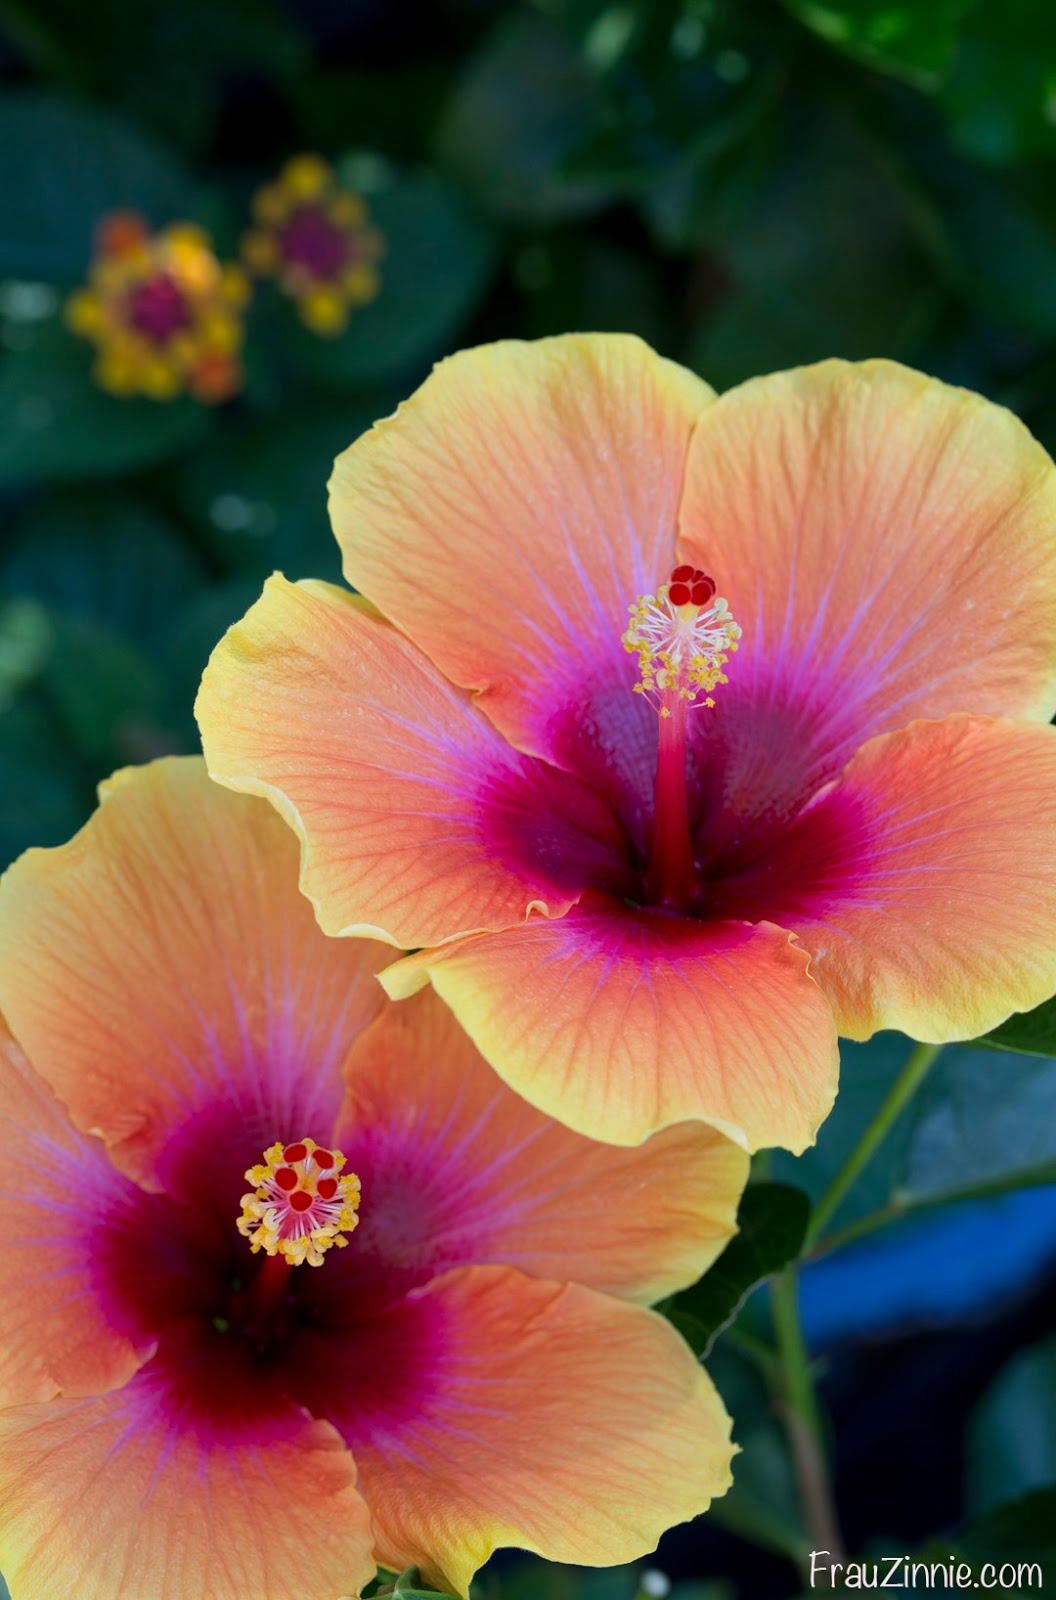 Floral Friday: Bright colors